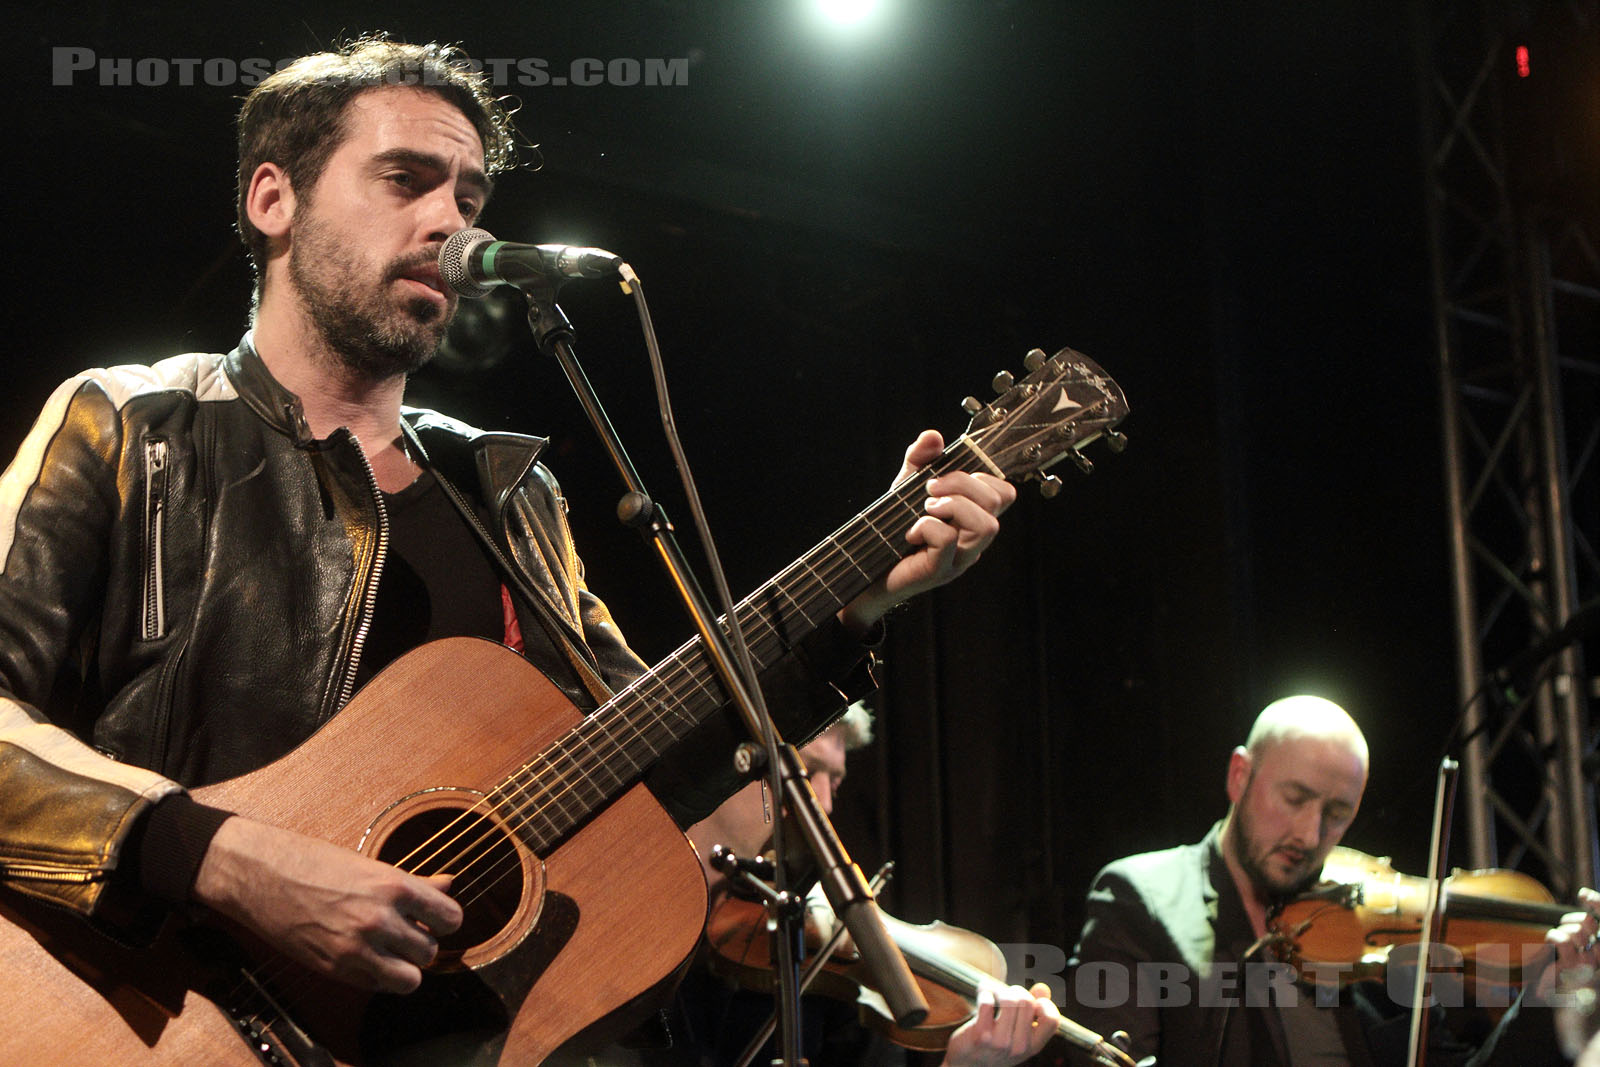 KRIS DANE - 2015-04-29 - PARIS - La Fleche d'Or